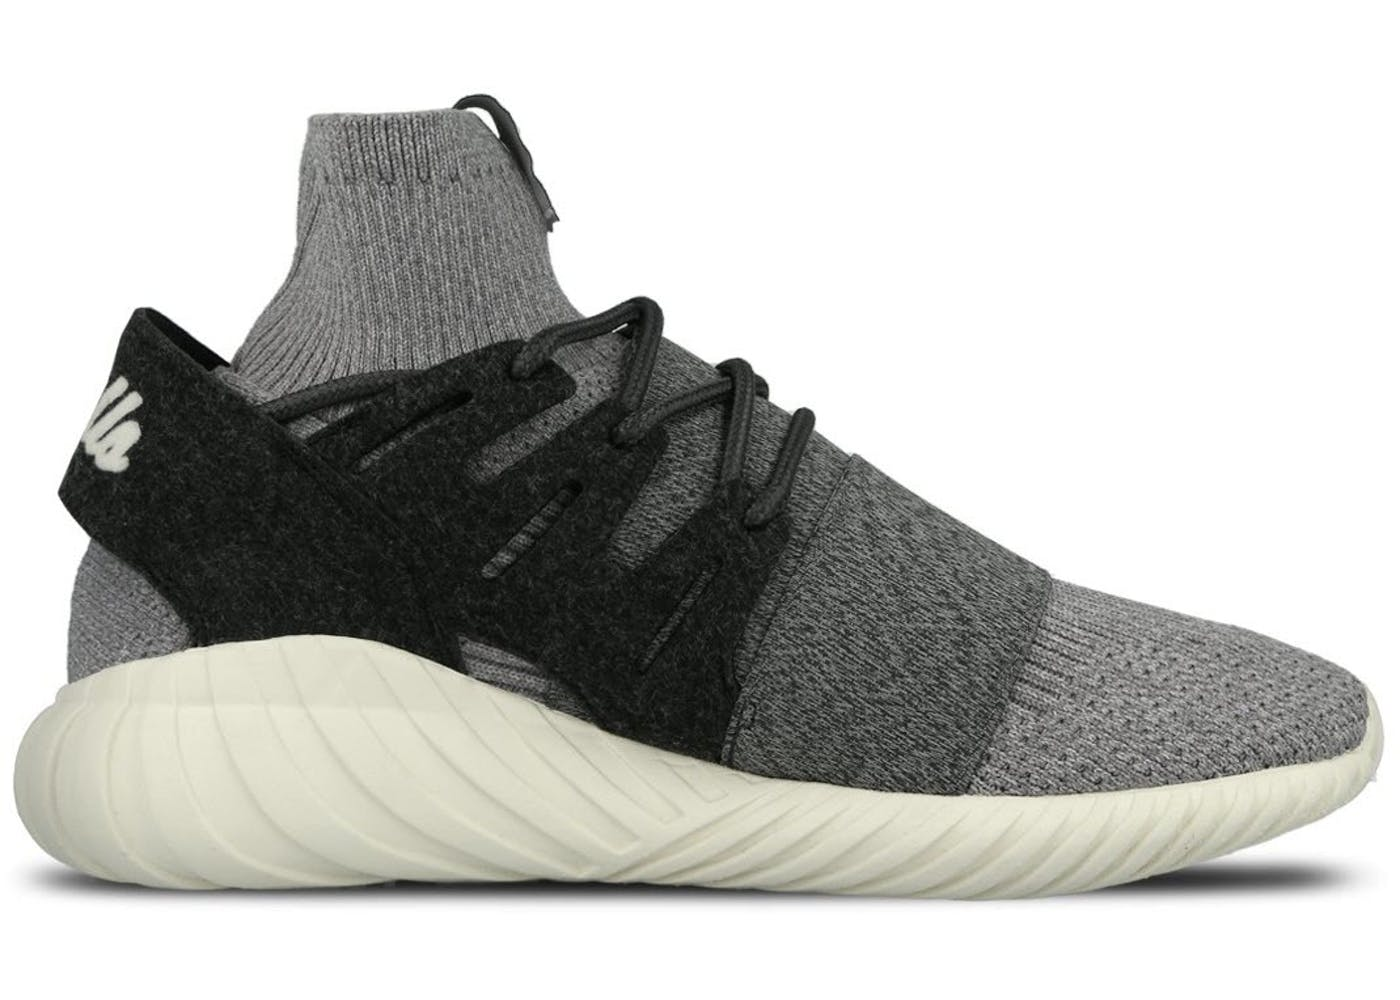 Adidas Tubular Doom Gray Review Eckington School